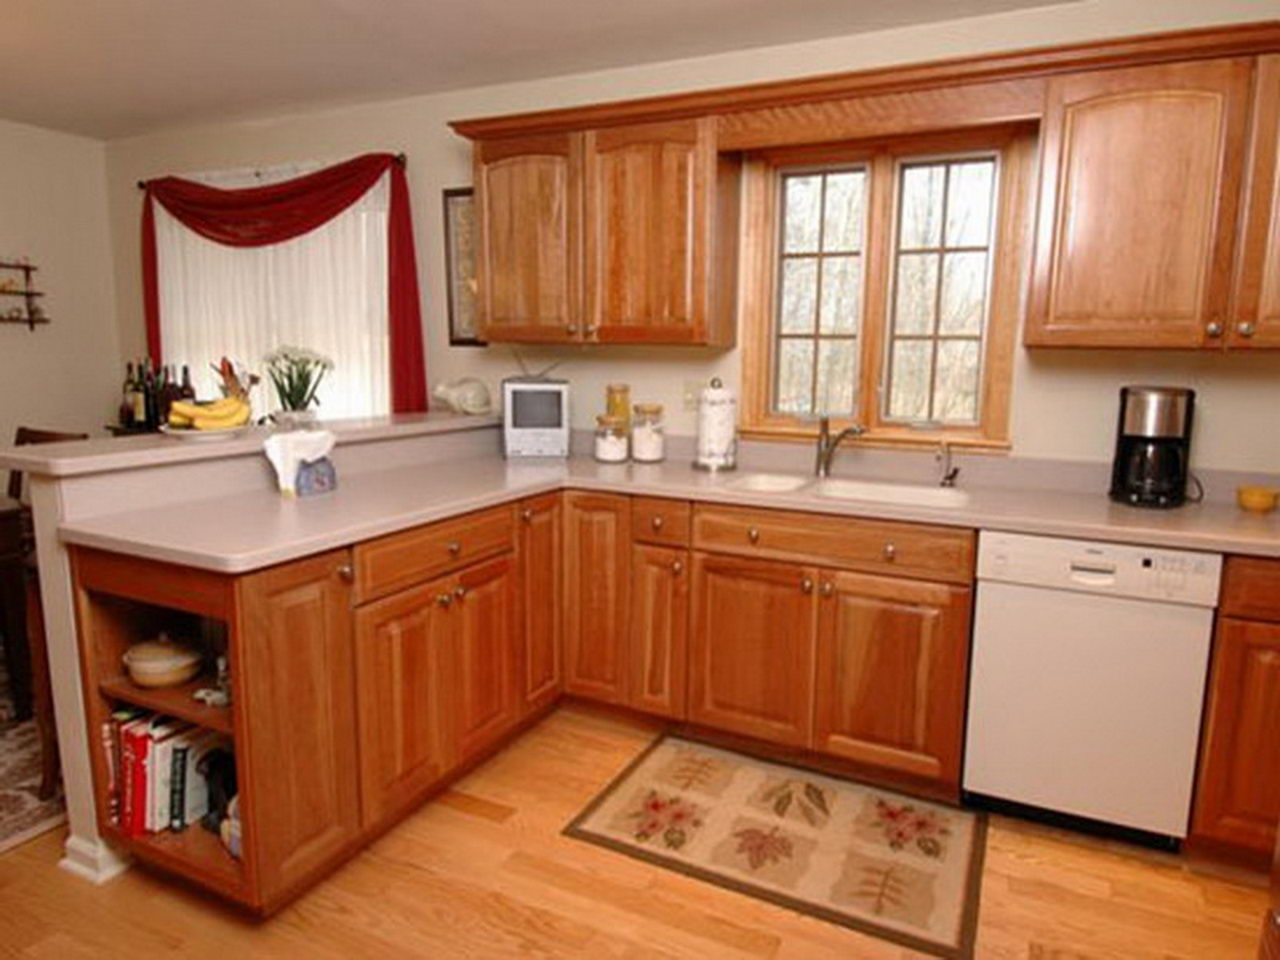 Kitchen cabinets and storage ideas homedizz Kitchen furniture ideas